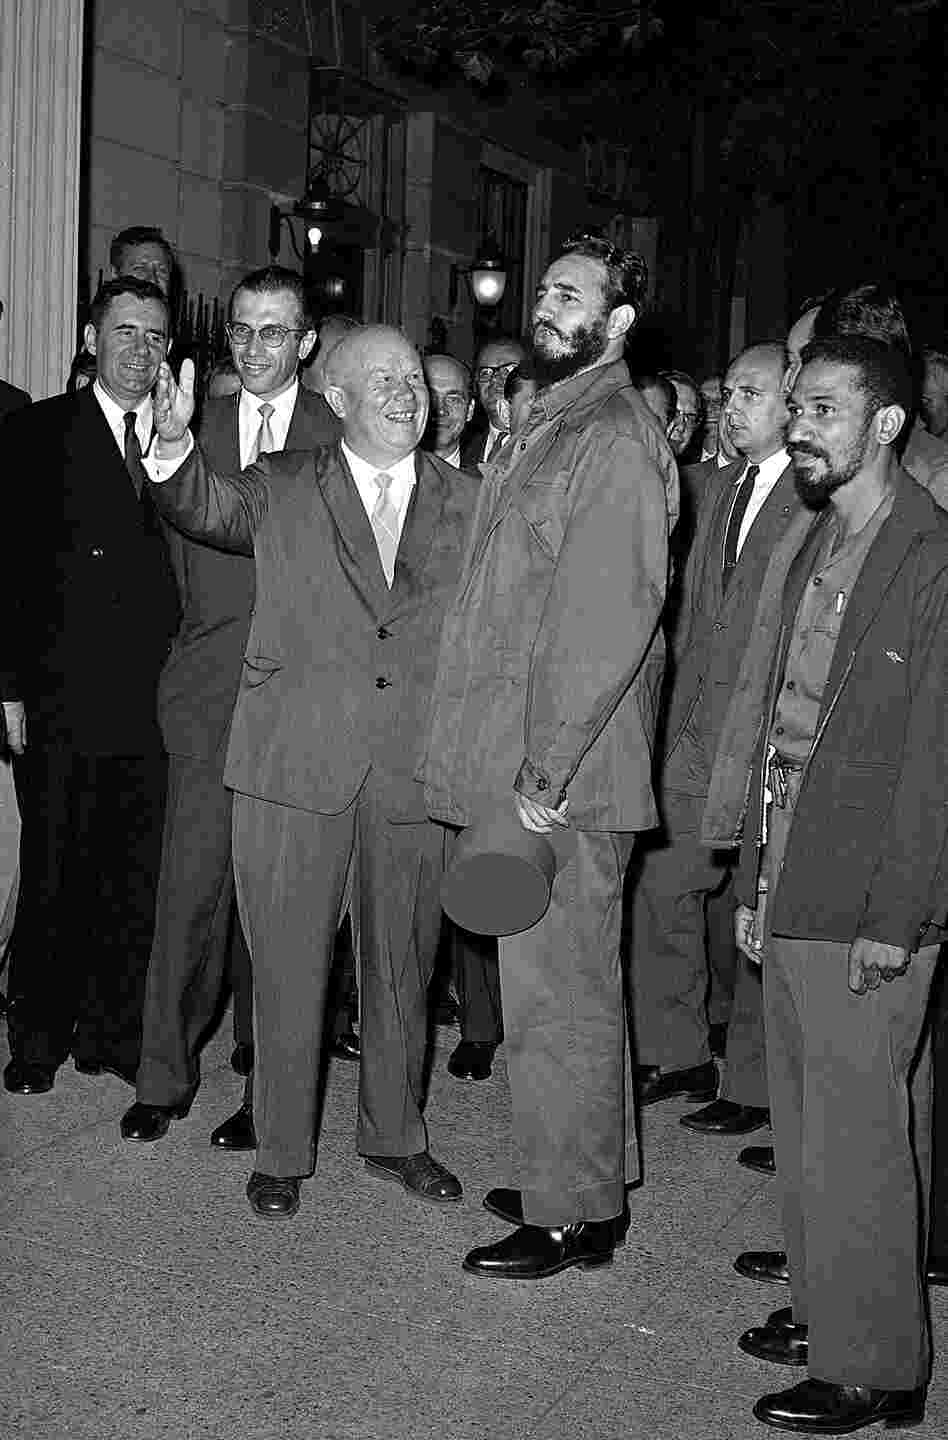 Khrushchev welcomes Cuban Prime Minister Fidel Castro as Castro arrives for a dinner at the headquarters of the Soviet UN delegation in New York, Sept. 23, 1960.